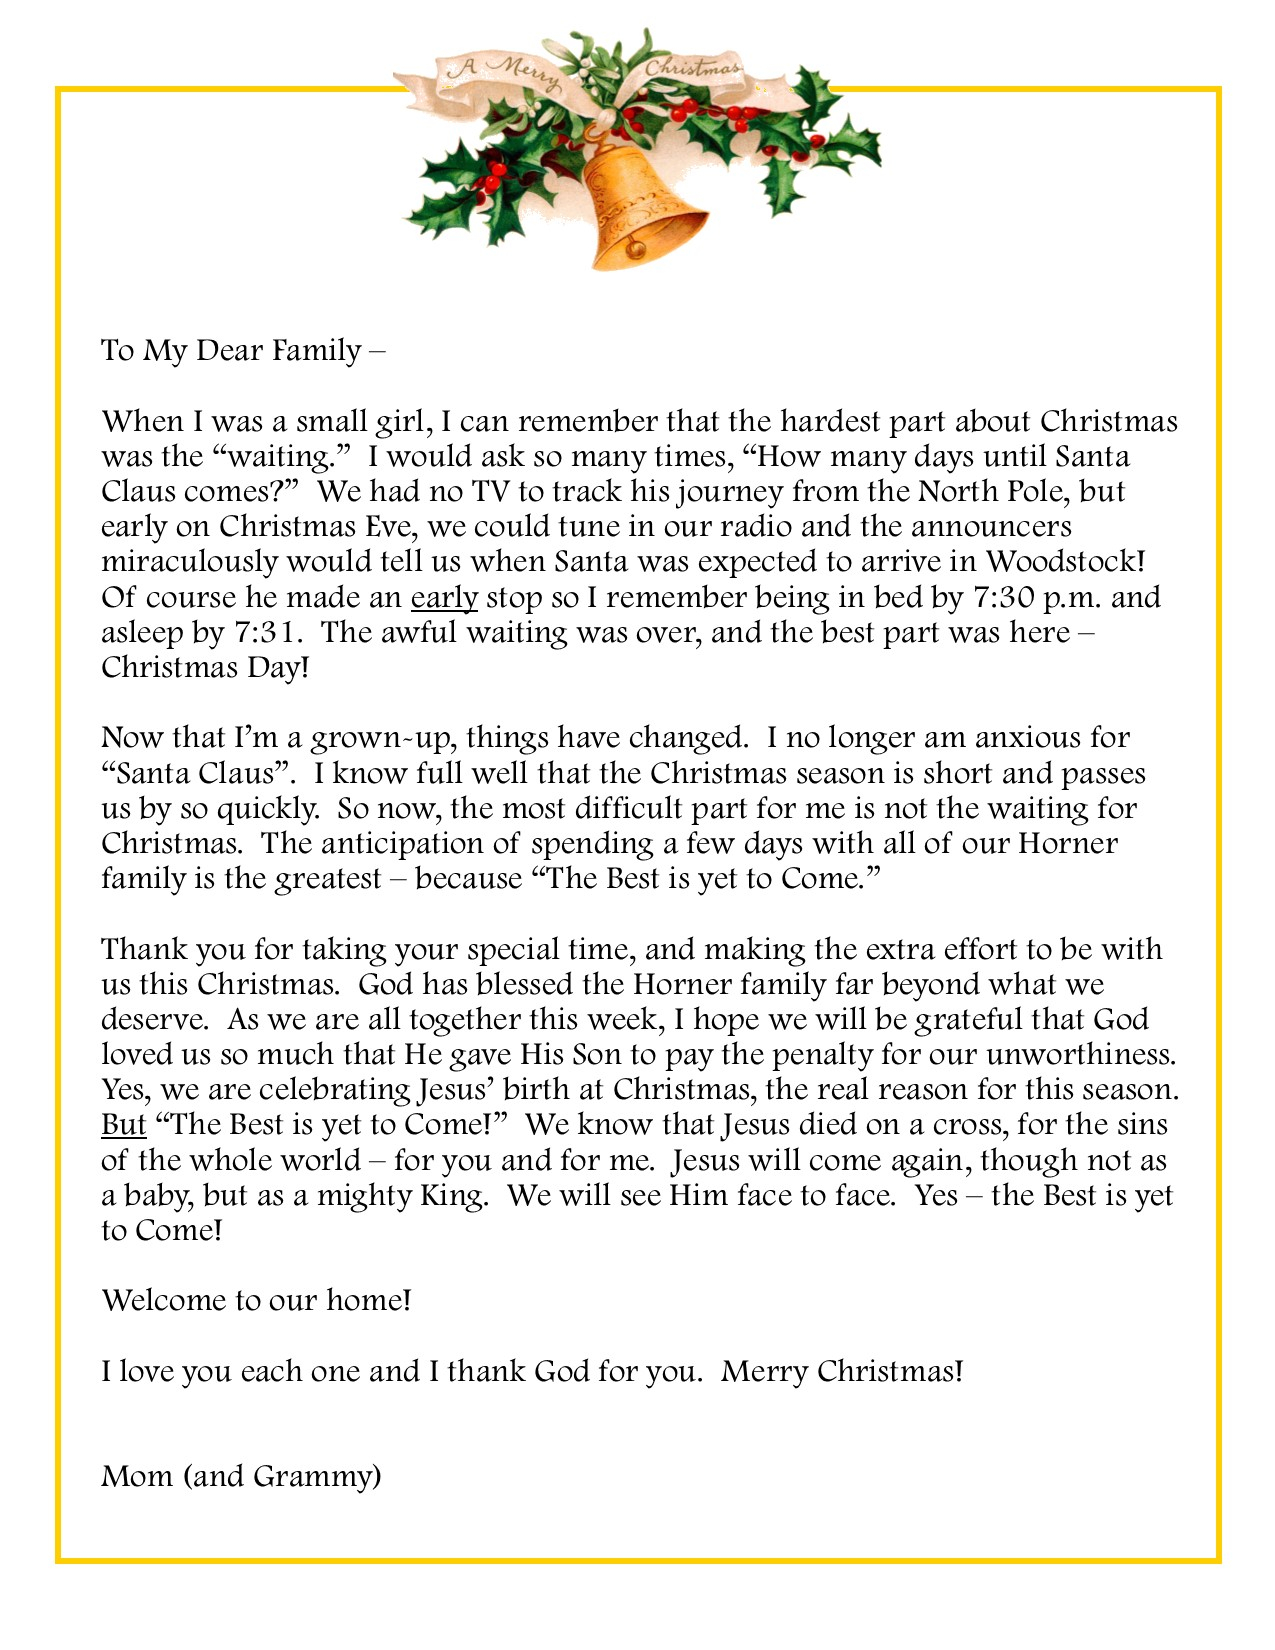 Family Christmas Letter Template - Family Reunion Interest Letter Choice Image Letter format formal